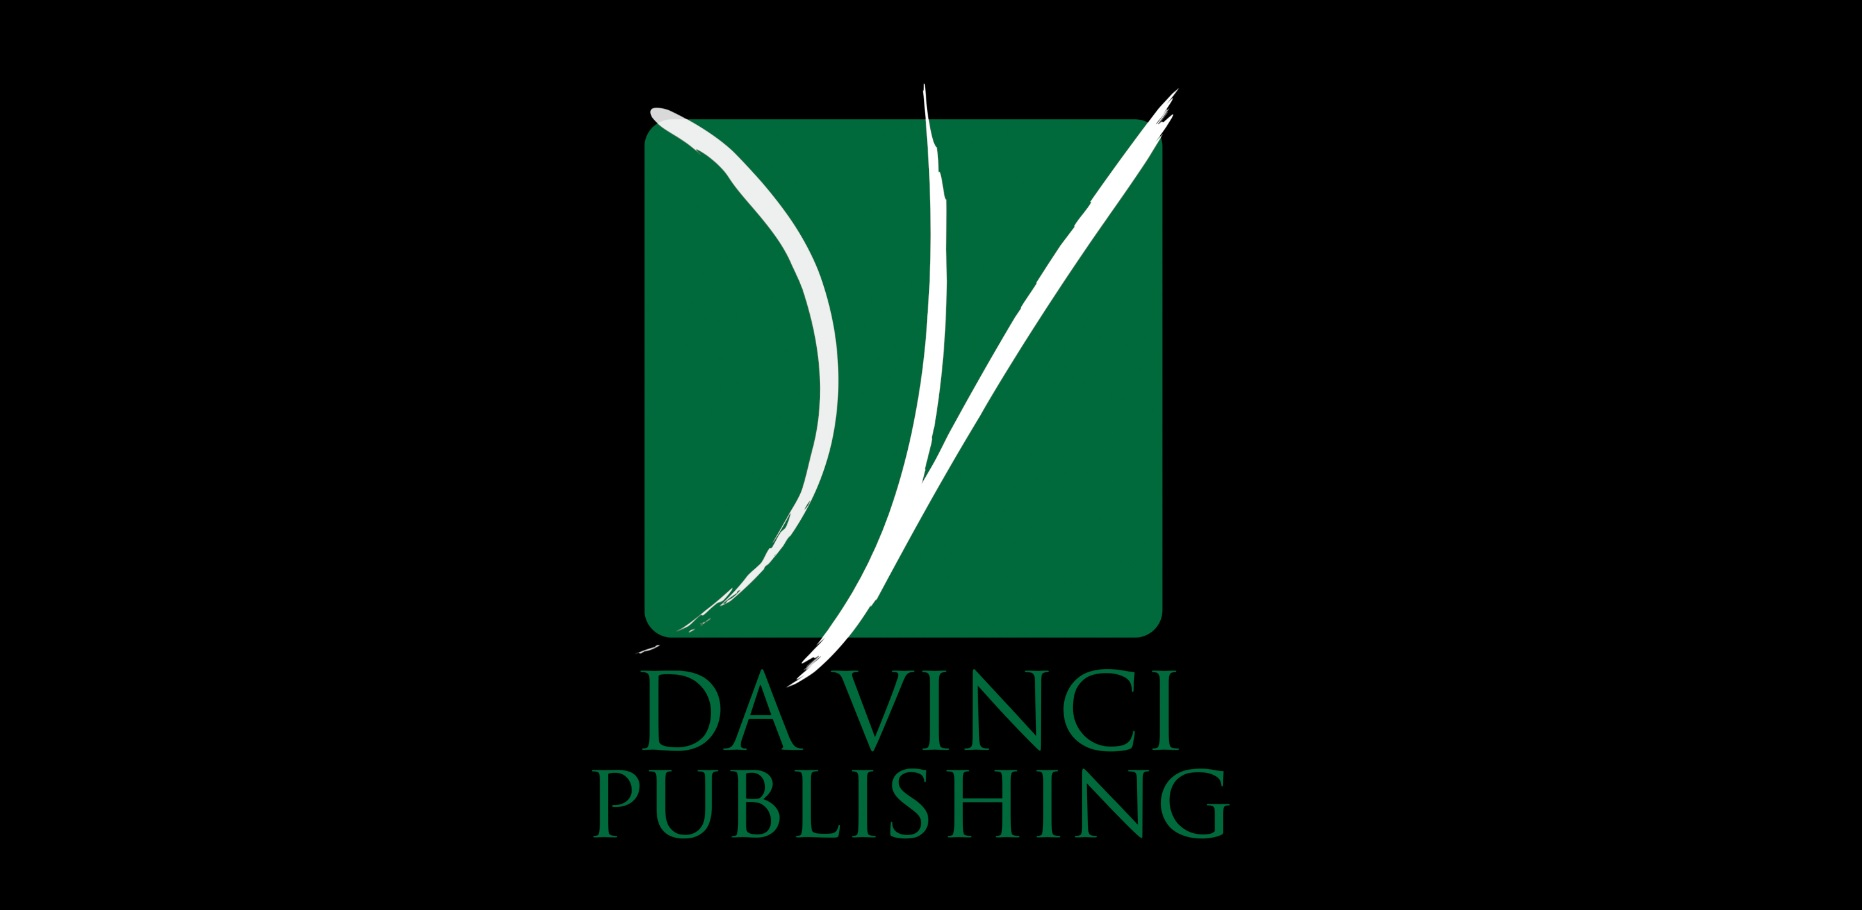 Da Vinci Publishing